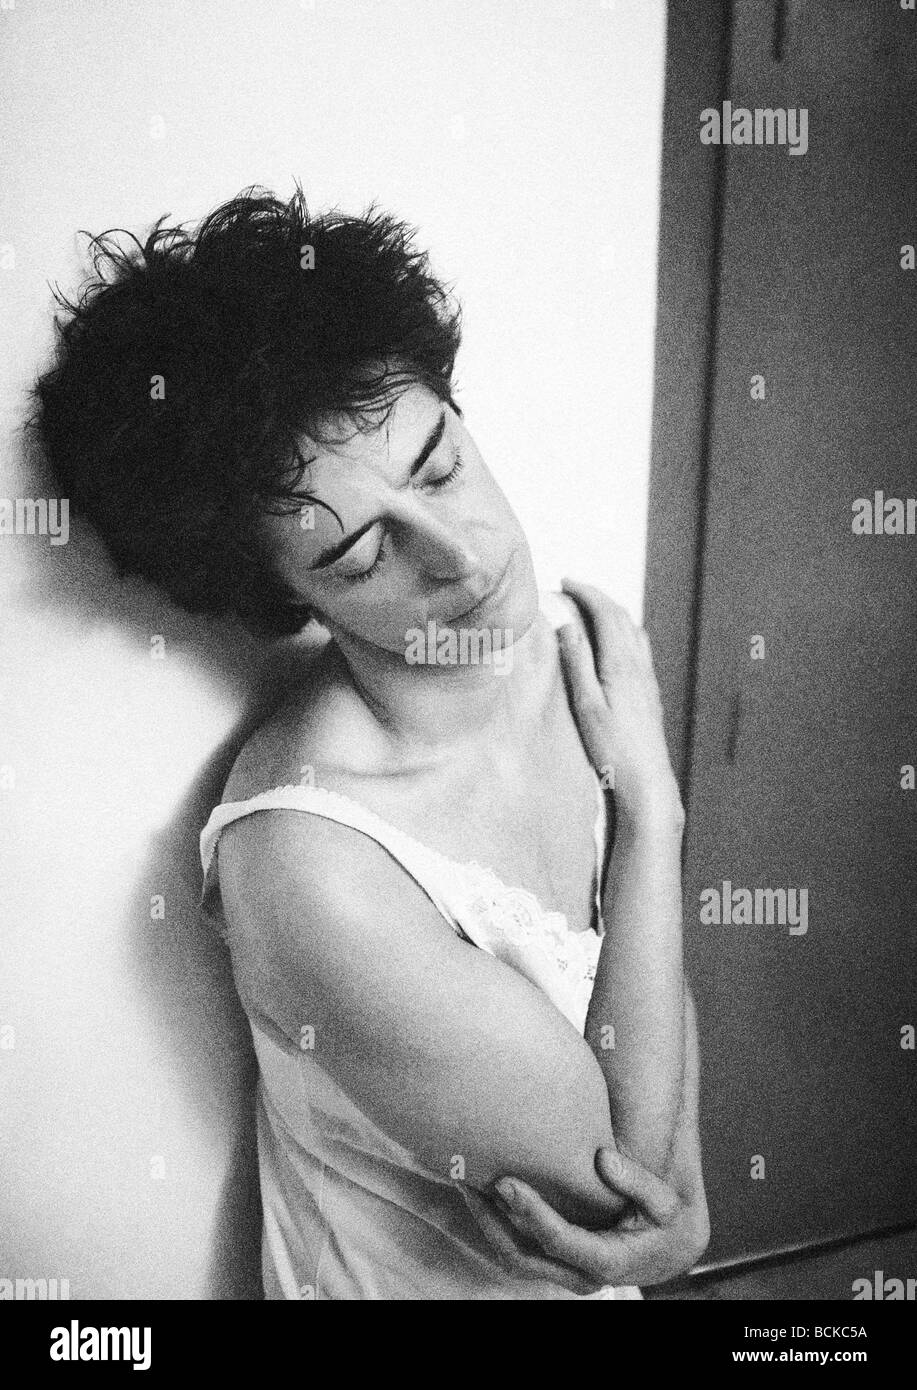 Woman leaning against wall with arm across chest, b&w - Stock Image